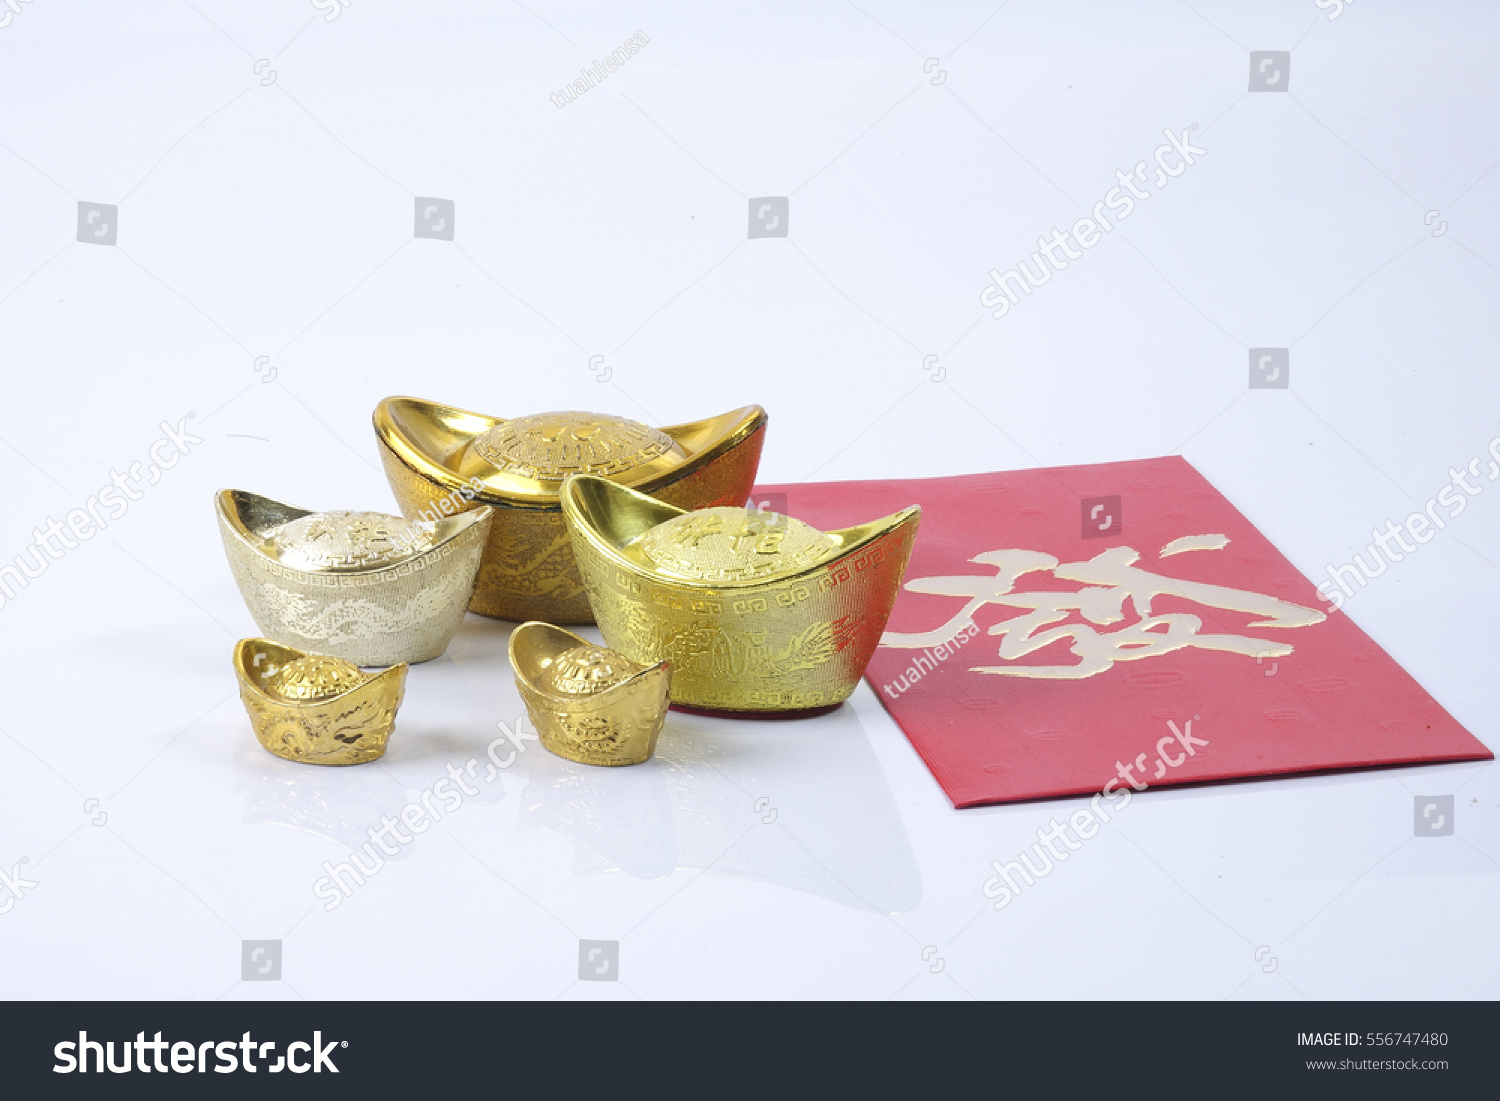 Chinese new year festival decorations ang stock photo for Ang pow packet decoration